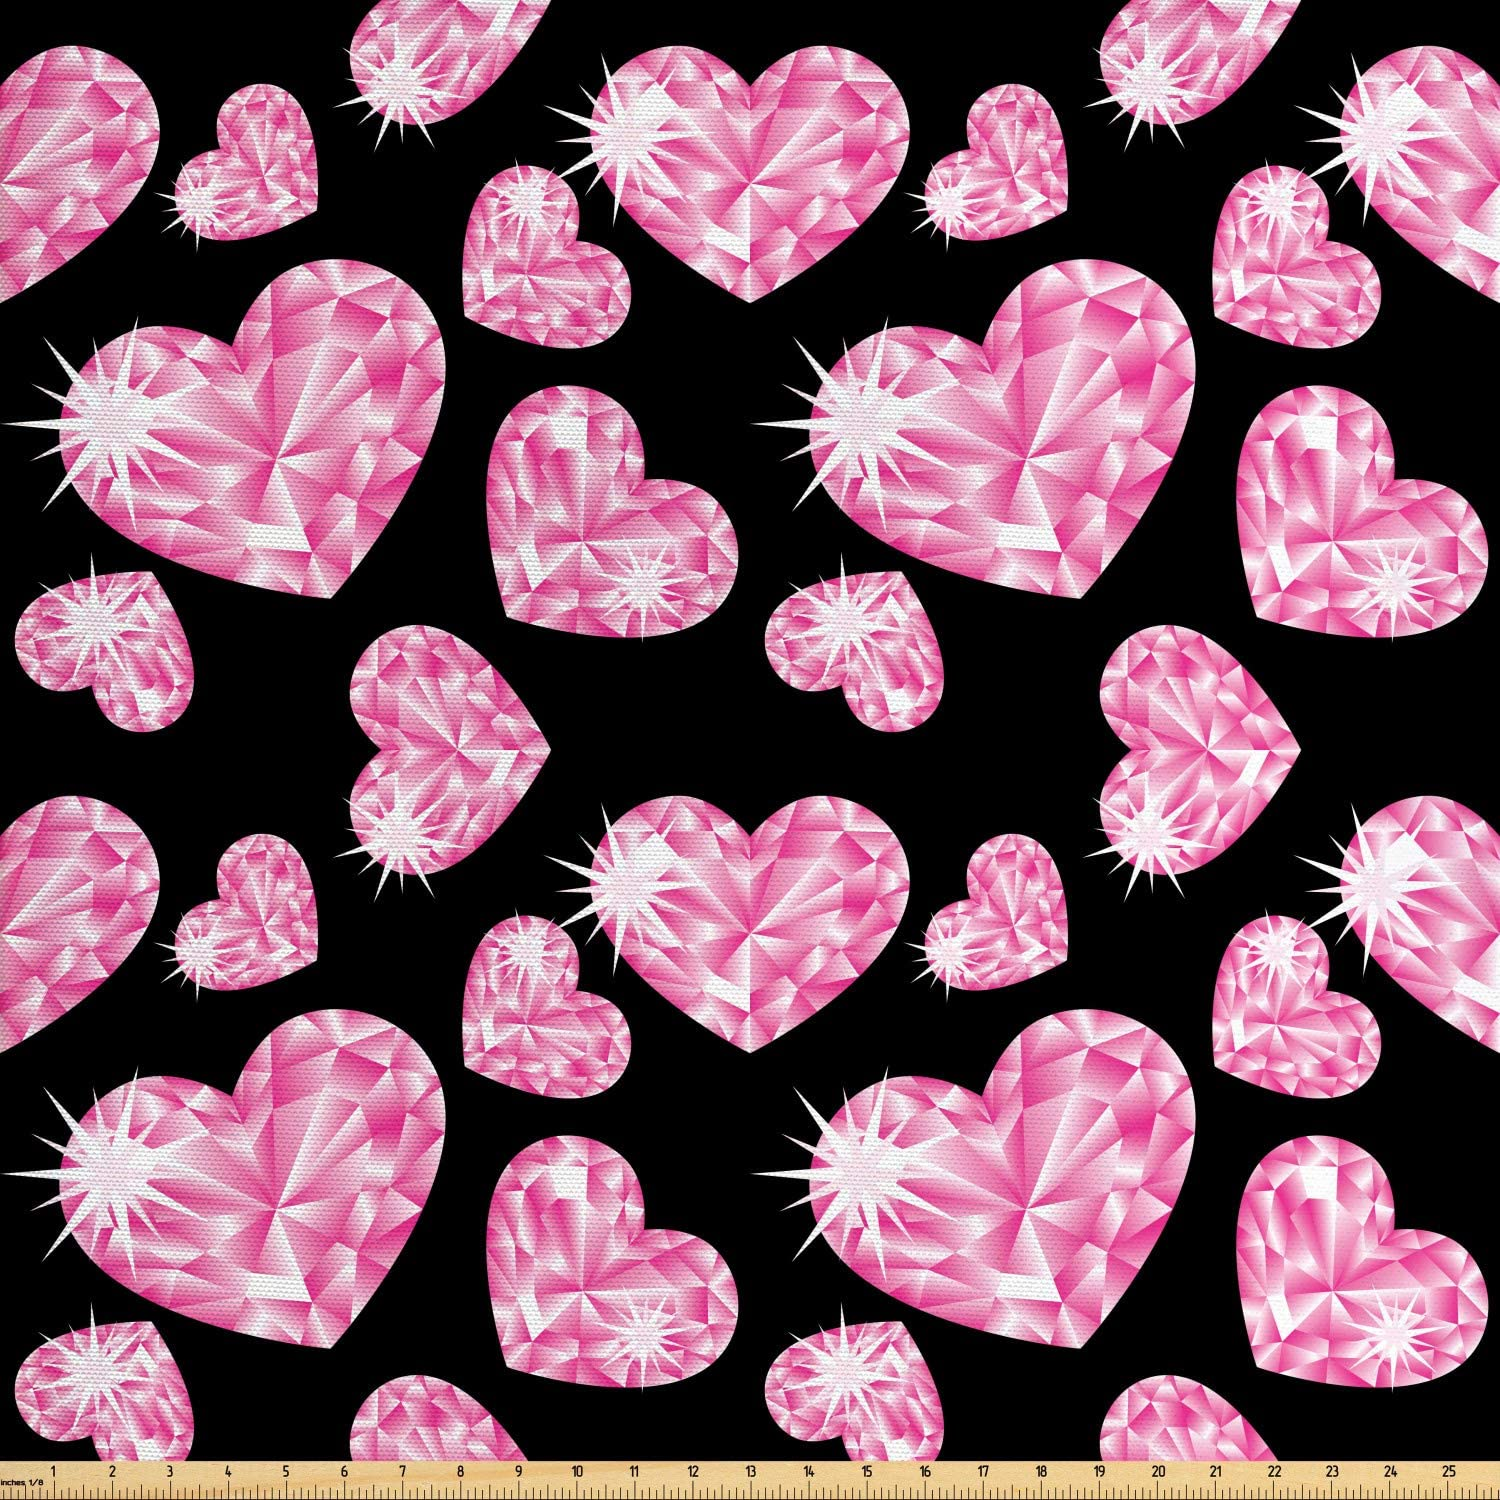 Ambesonne Diamonds Fabric by The Yard, Romantic Pink Heart Stones on Black Background Valentines Day Theme, Decorative Fabric for Upholstery and Home Accents, 1 Yard, Pink Black